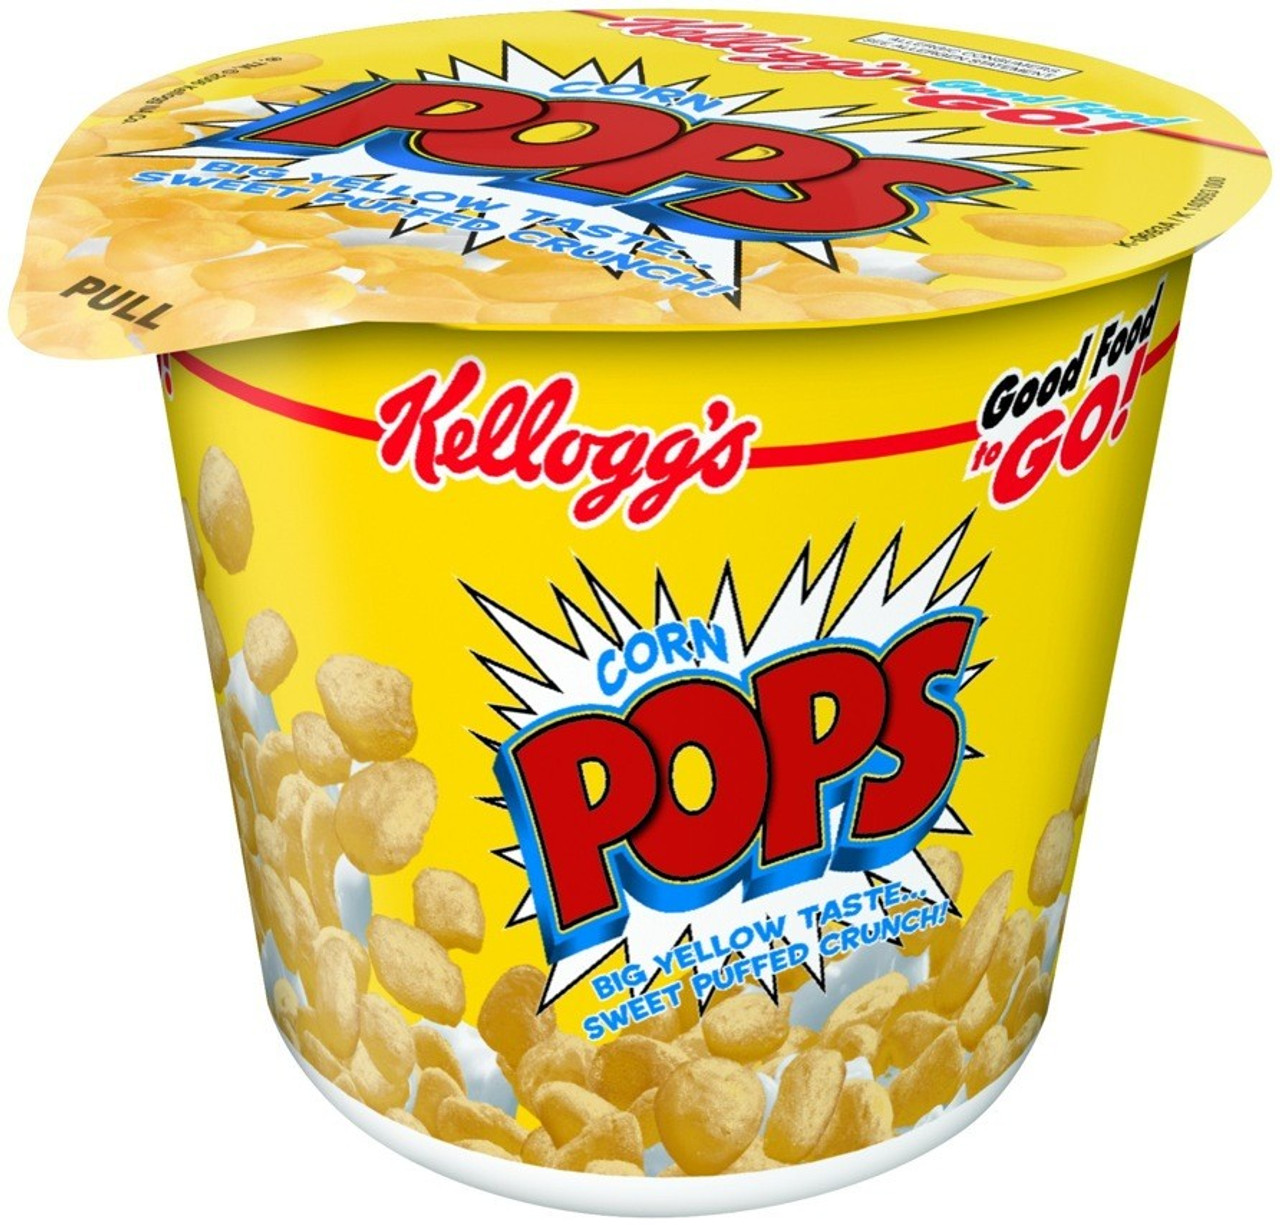 Kellogg's Cereal In A Cup, Corn Pops, 1.5 Oz. Bowl (1